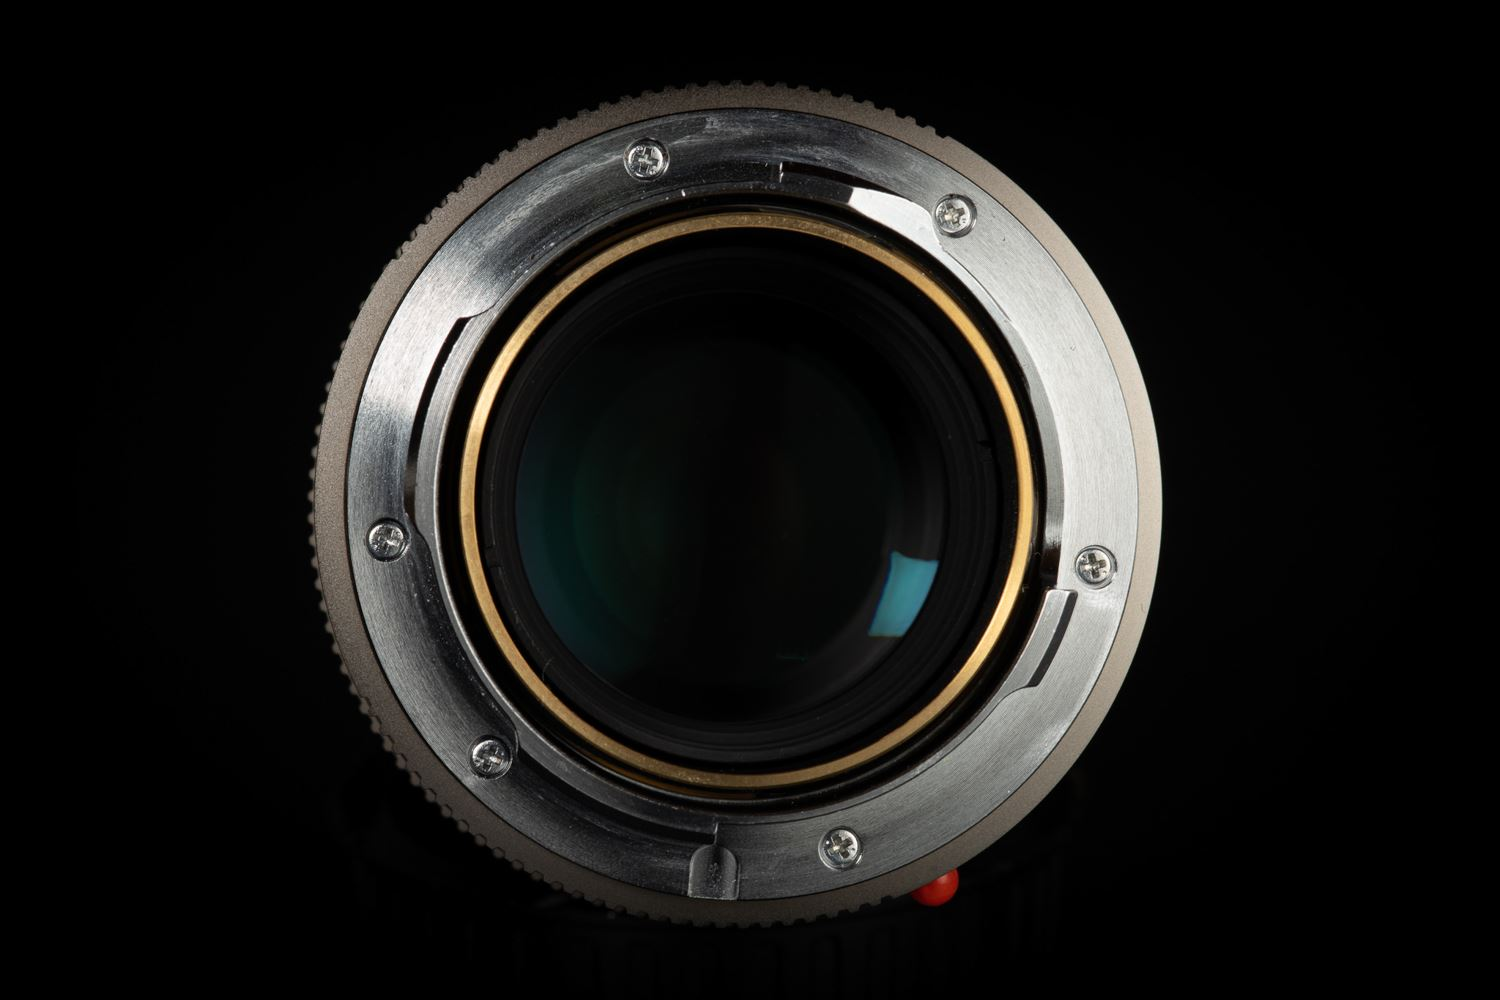 Picture of Leica Elmarit-M 90mm f/2.8 Titanium